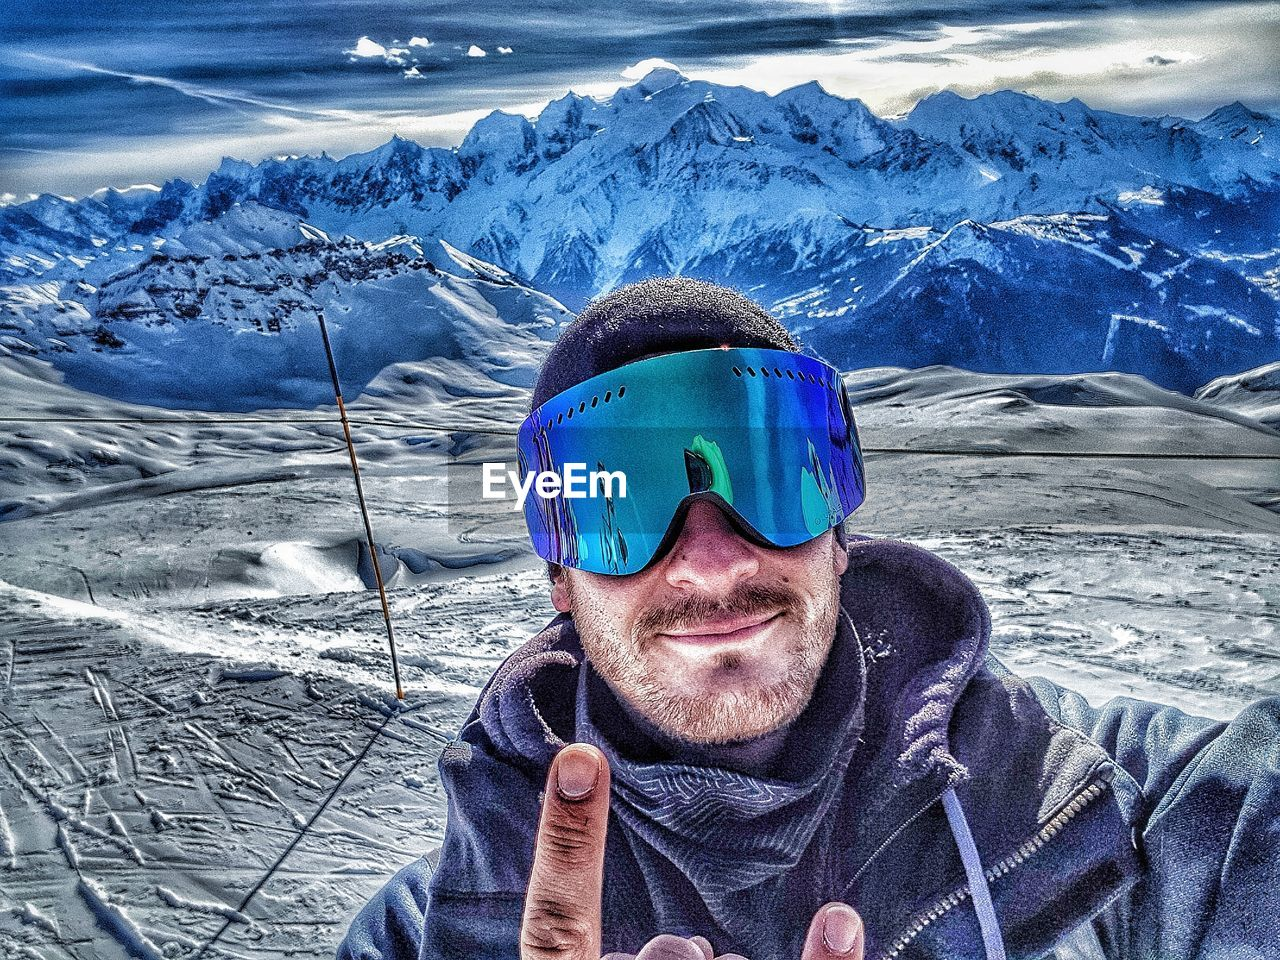 Portrait Of Man In Ski Goggles Gesturing Against Snow Covered Mountains